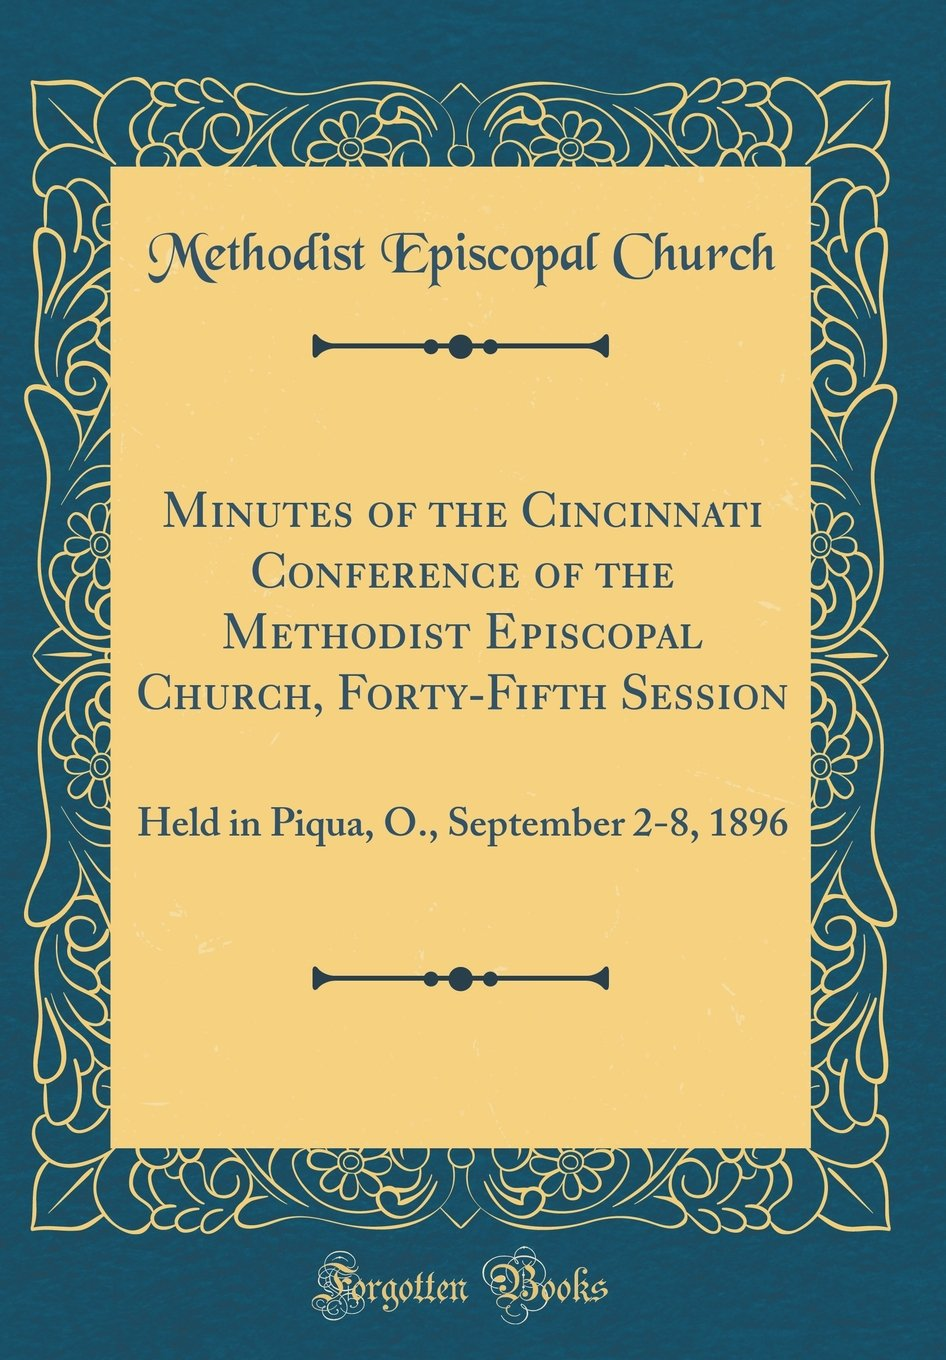 Minutes of the Cincinnati Conference of the Methodist Episcopal Church, Forty-Fifth Session: Held in Piqua, O., September 2-8, 1896 (Classic Reprint) pdf epub